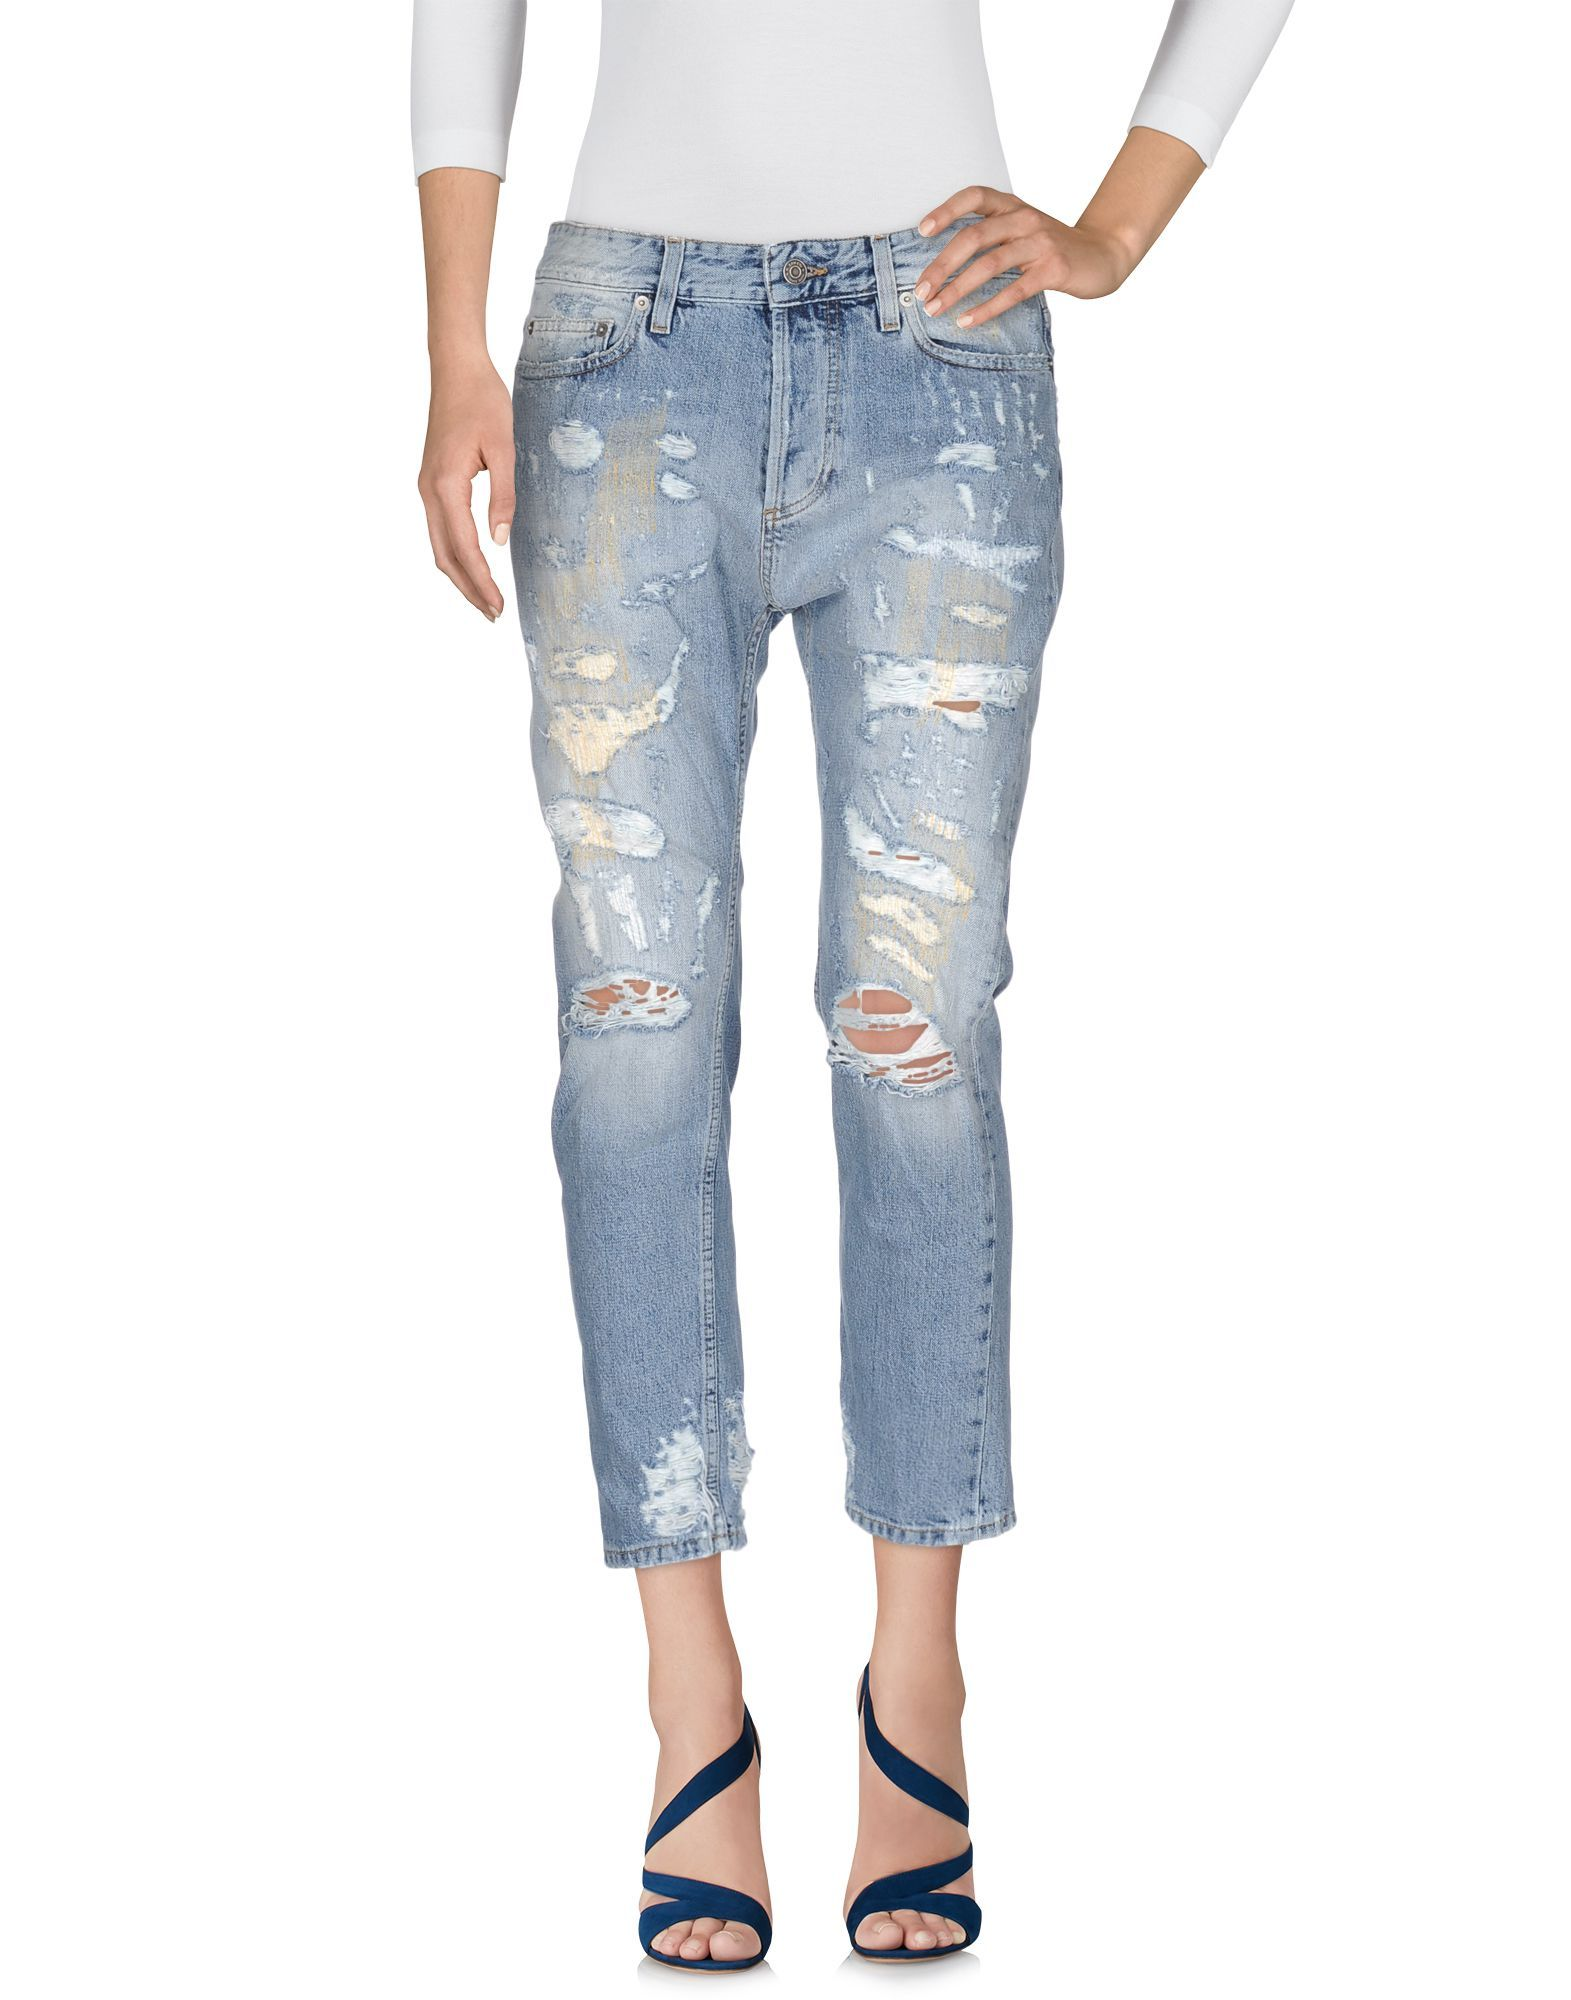 Mauro Grifoni Blue Cotton Cropped Jeans